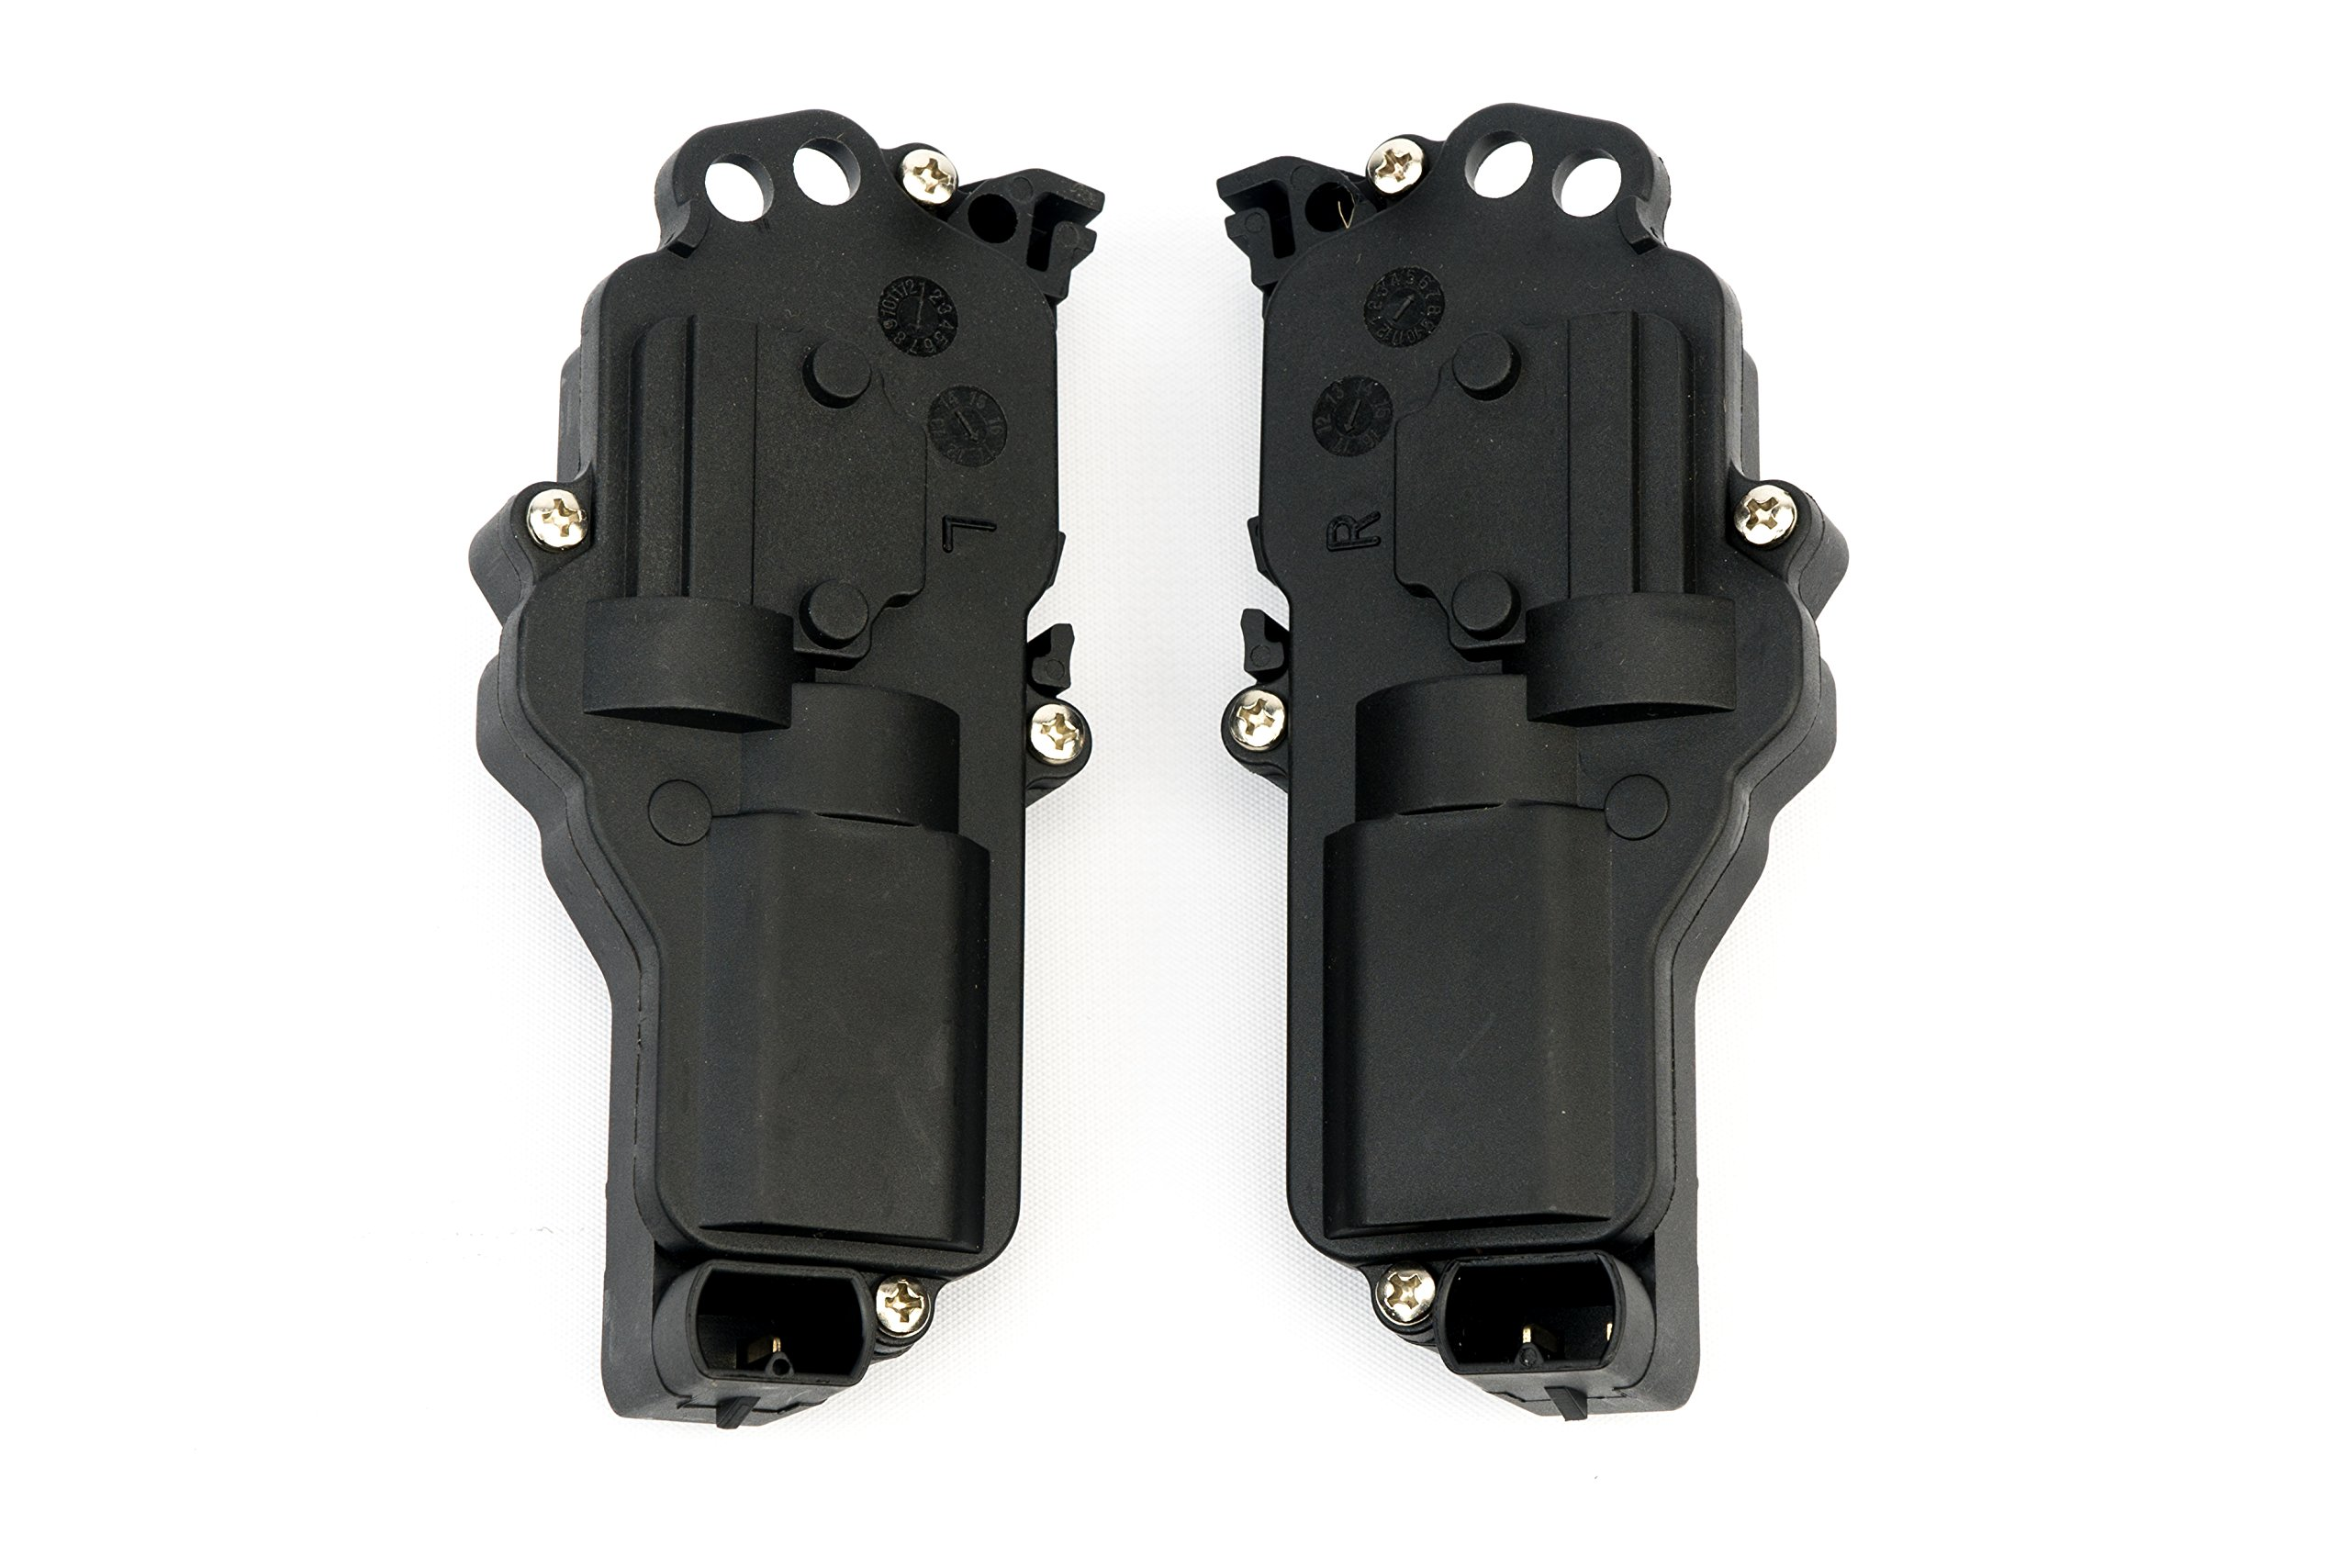 Power Door Lock Actuator, Right & Left Side - Fits Ford F150, F250, F350, F450, Excursion, Expedition, Mustang - Replaces# 6L3Z25218A43AA, 6L3Z25218A42AA - Electric Lock Motor, Driver & Passenger Side